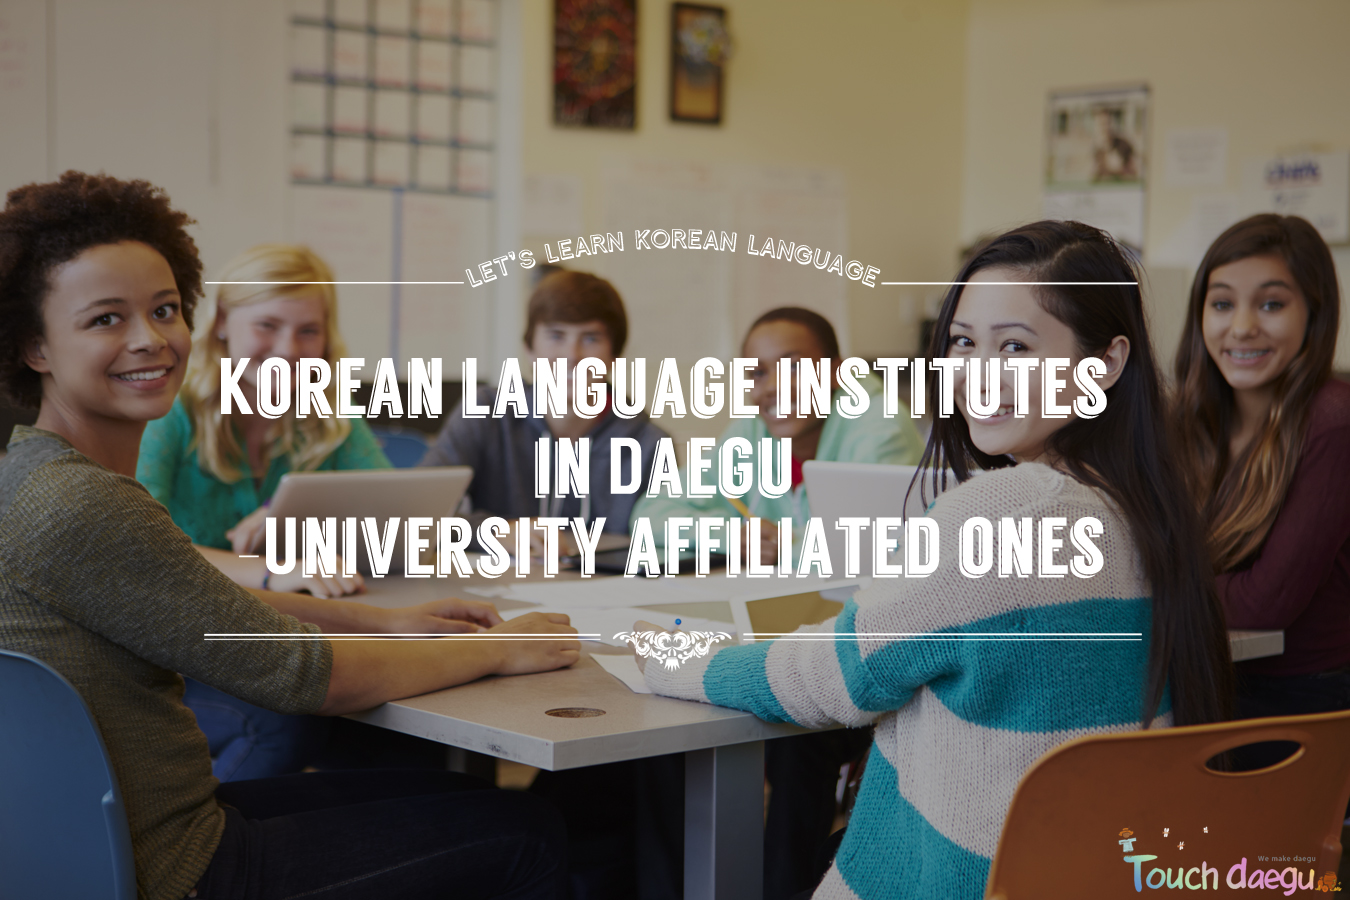 Korean language institutes in Daegu -University affiliated ones